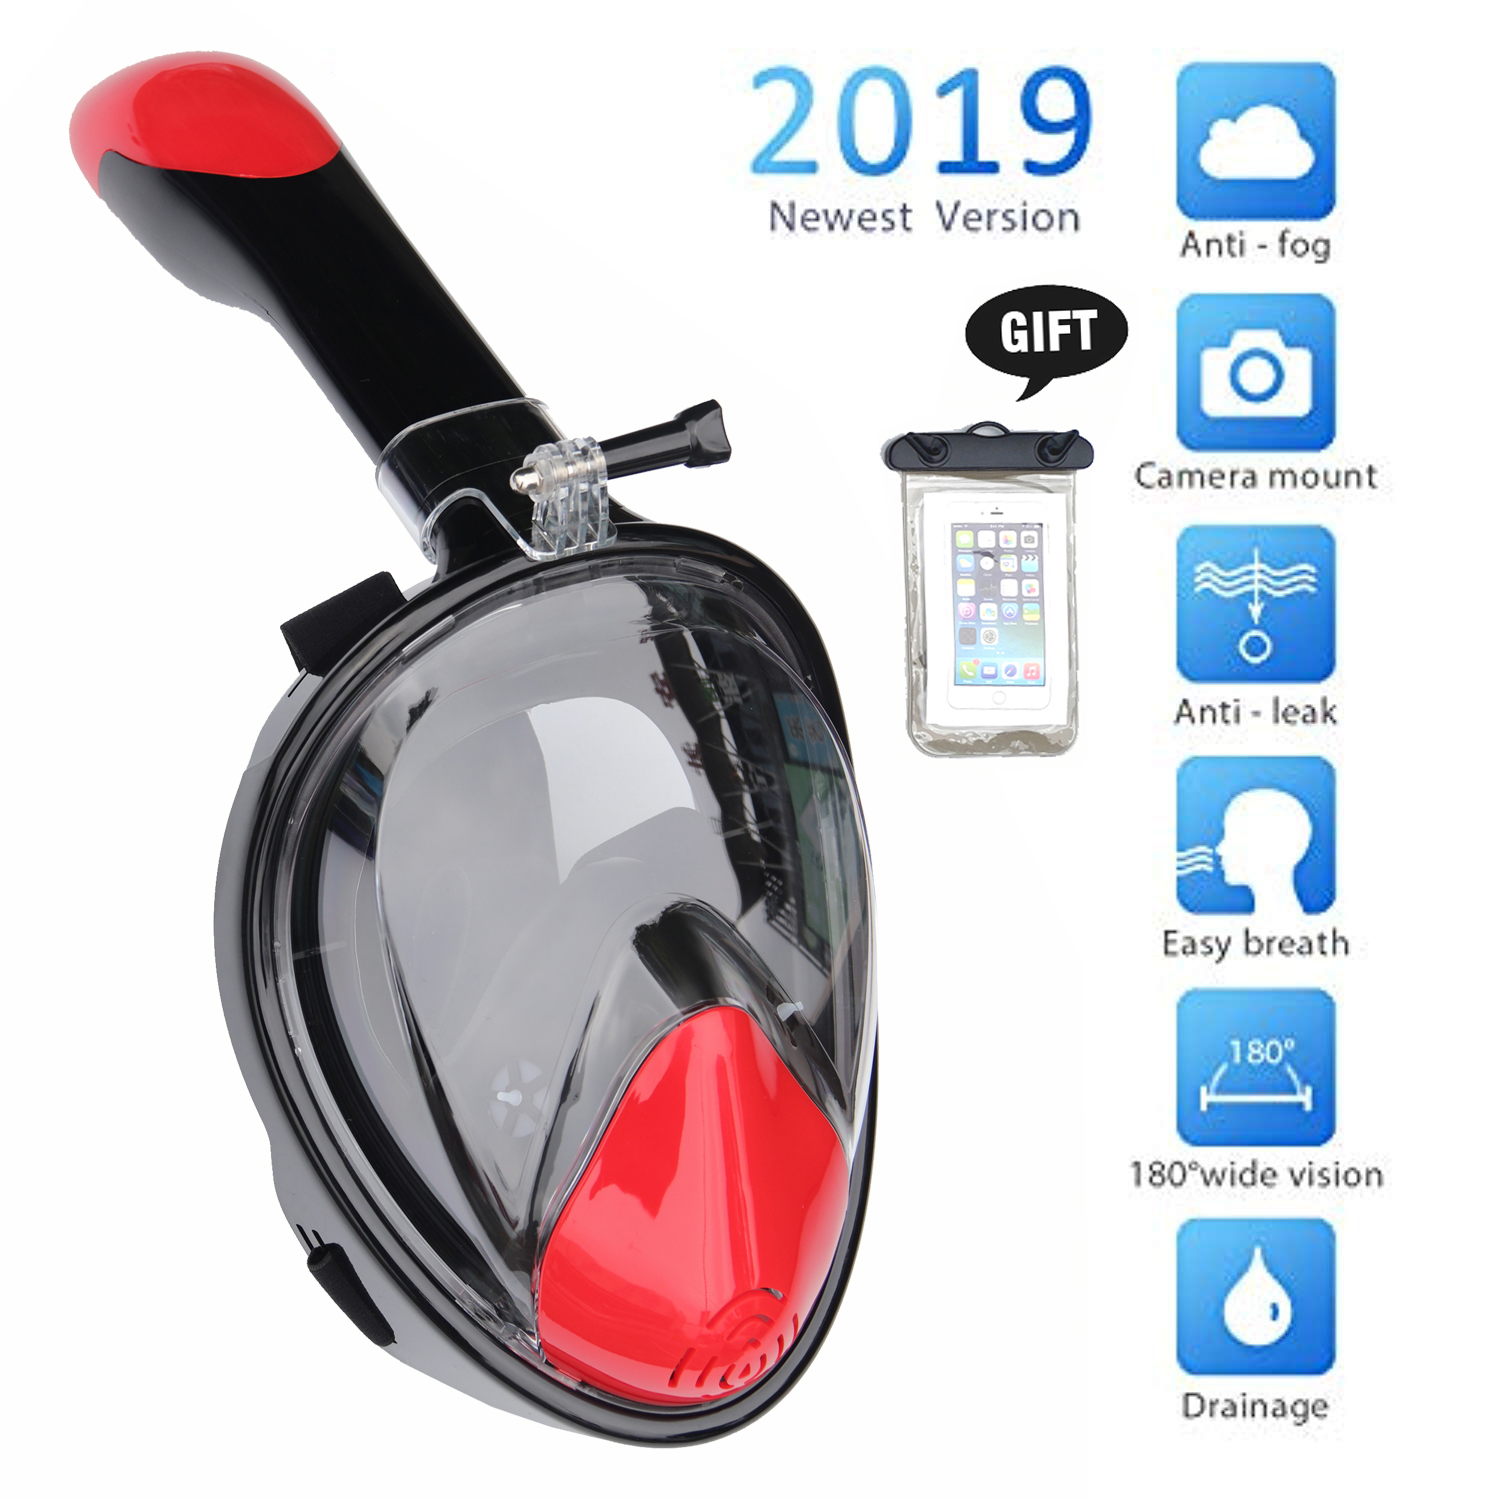 2019 Snorkeling Mask Set Full Face Diving Mask Anti-Fog Free Breathing 180 Panoramic Wide View Scuba Swmiming Mask